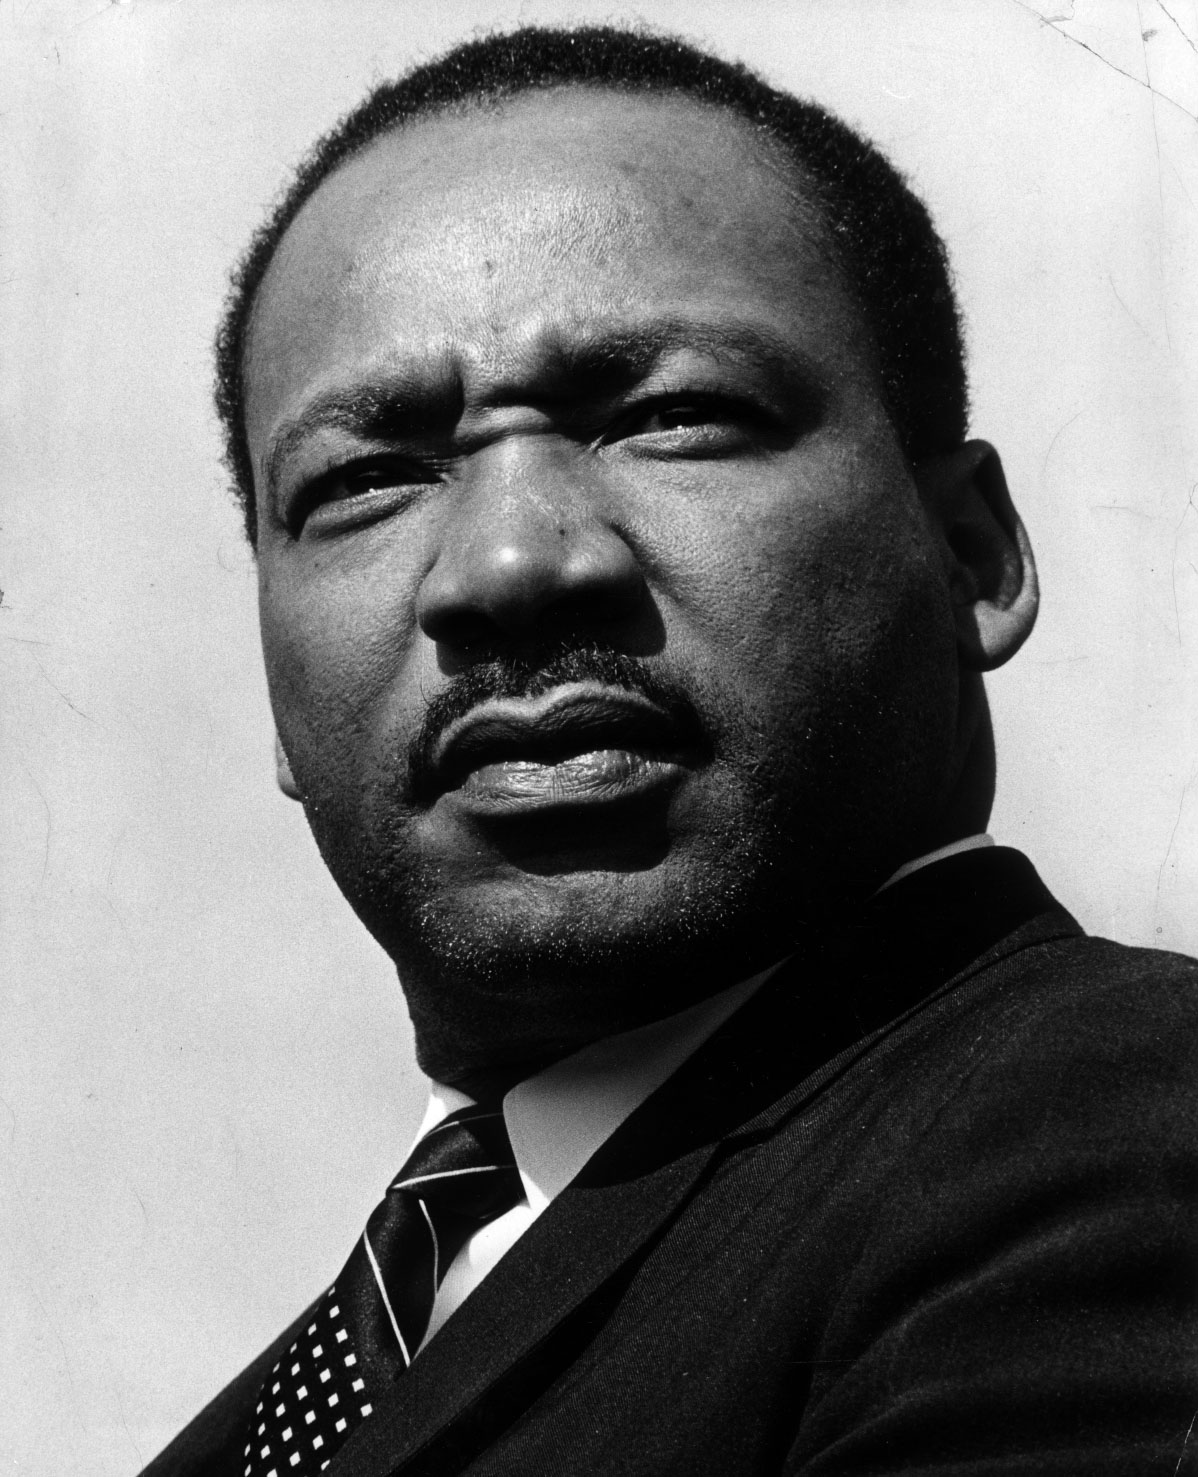 Shown is Martin Luther King Jr. during a 1967 visit to Minneapolis. Minneapolis Star (now Star Tribune) photo by staff photographer Charles Bjorgen.